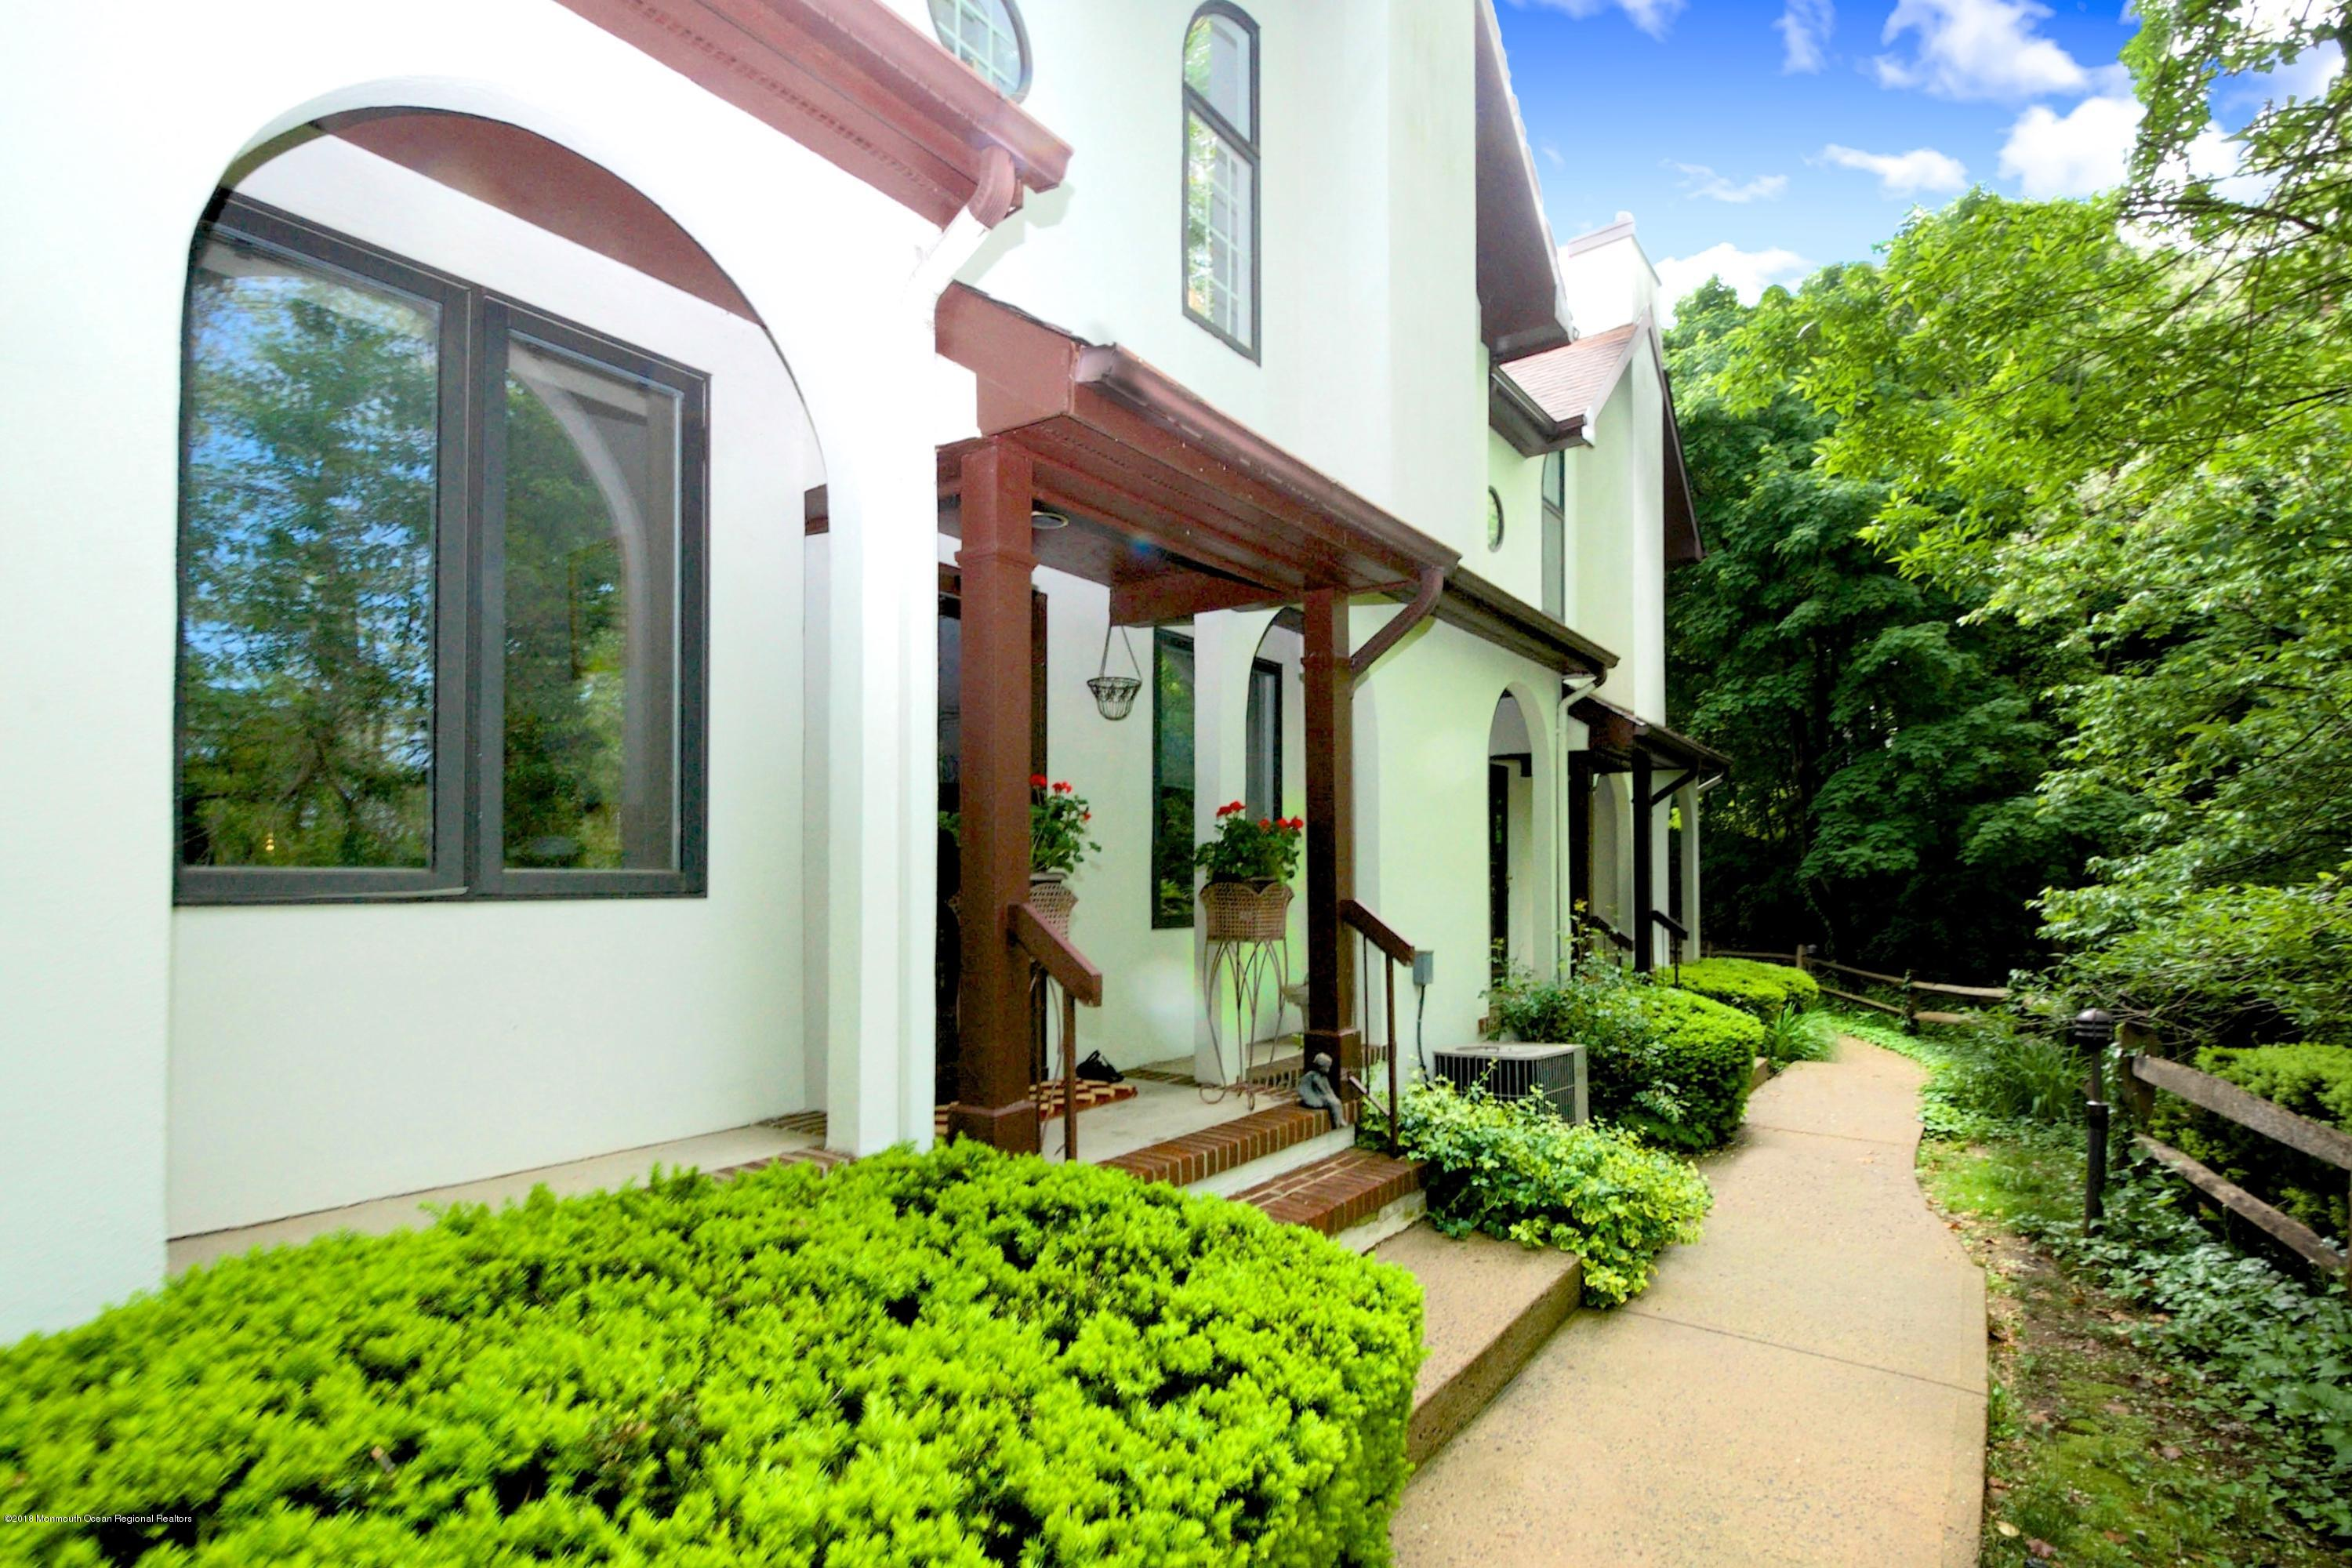 64 TOWER HILL DRIVE, RED BANK, NJ 07701